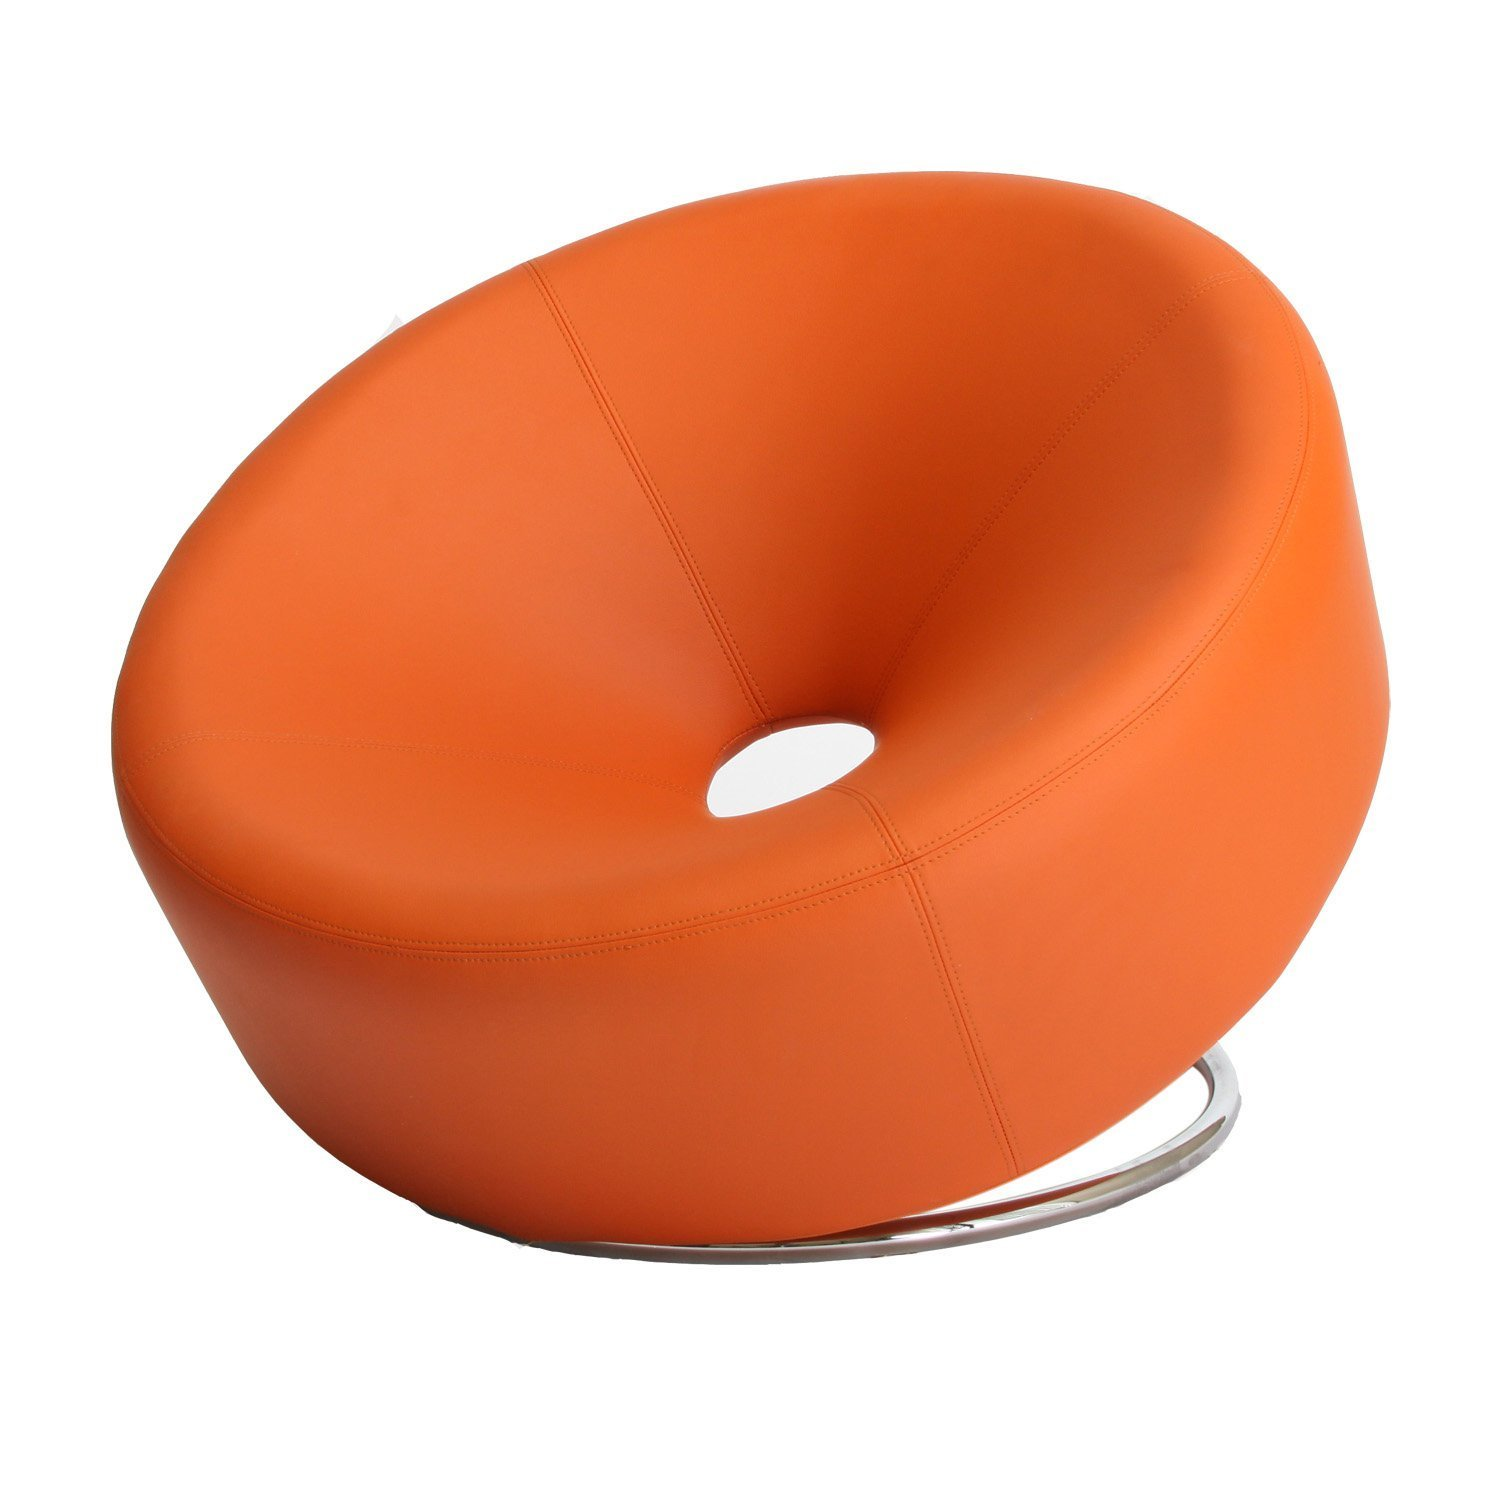 Nouvelle Modern Design Orange Leather Lounge Chair